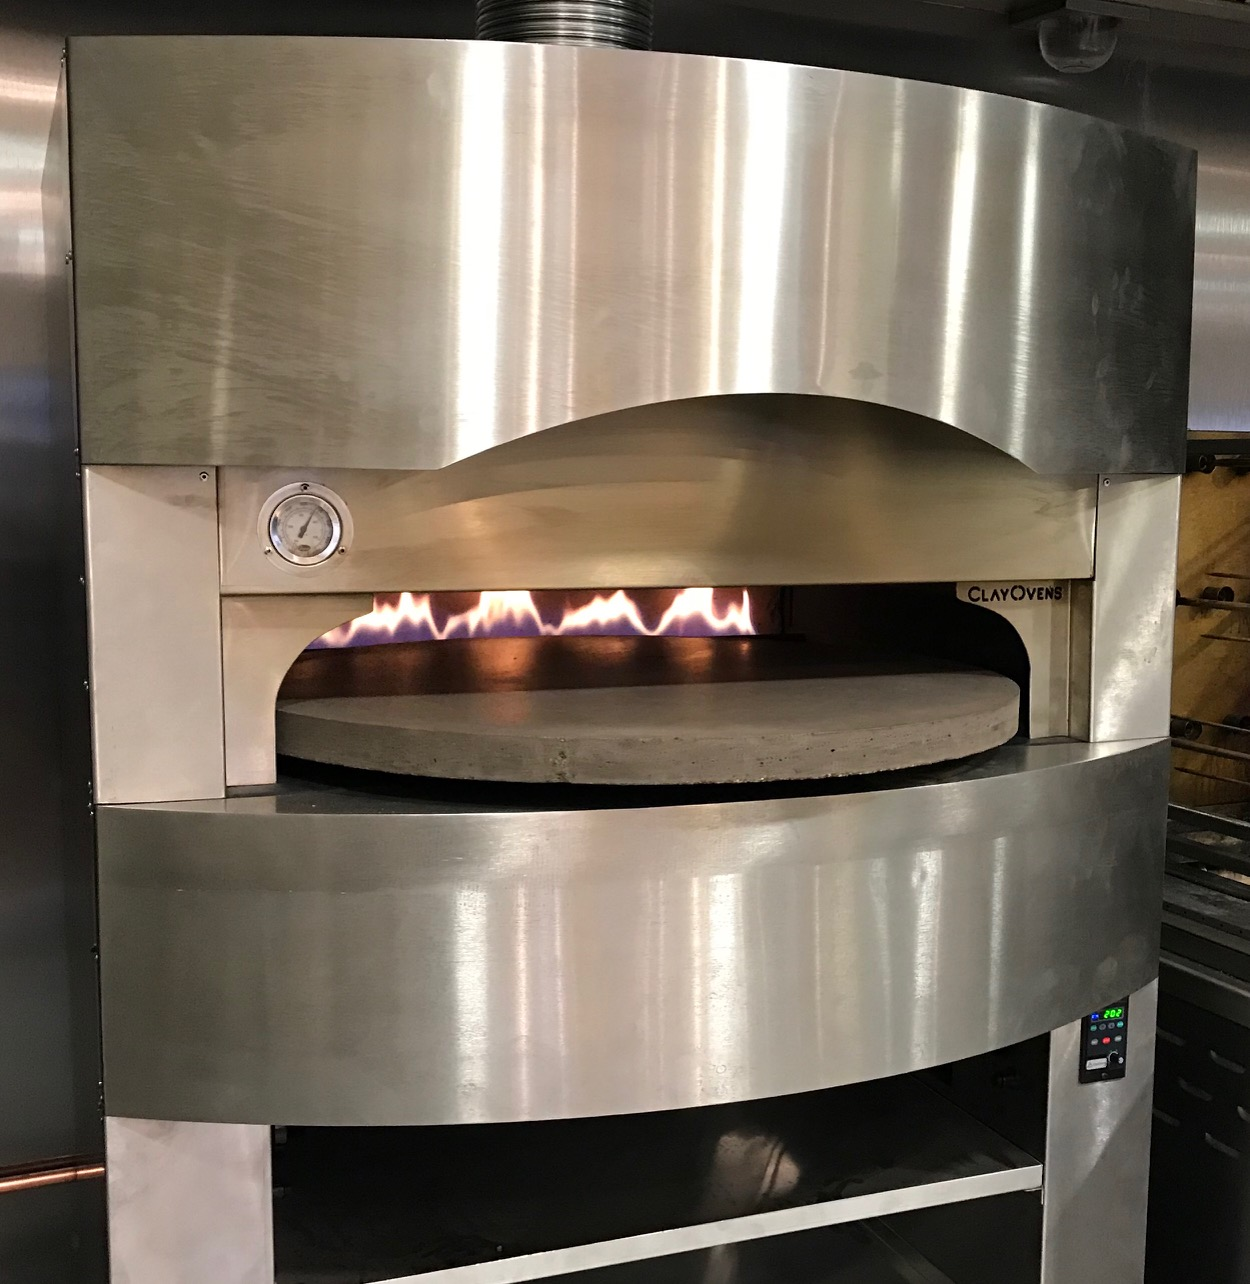 Image Gallery: The Rotana | Rotating Base Oven